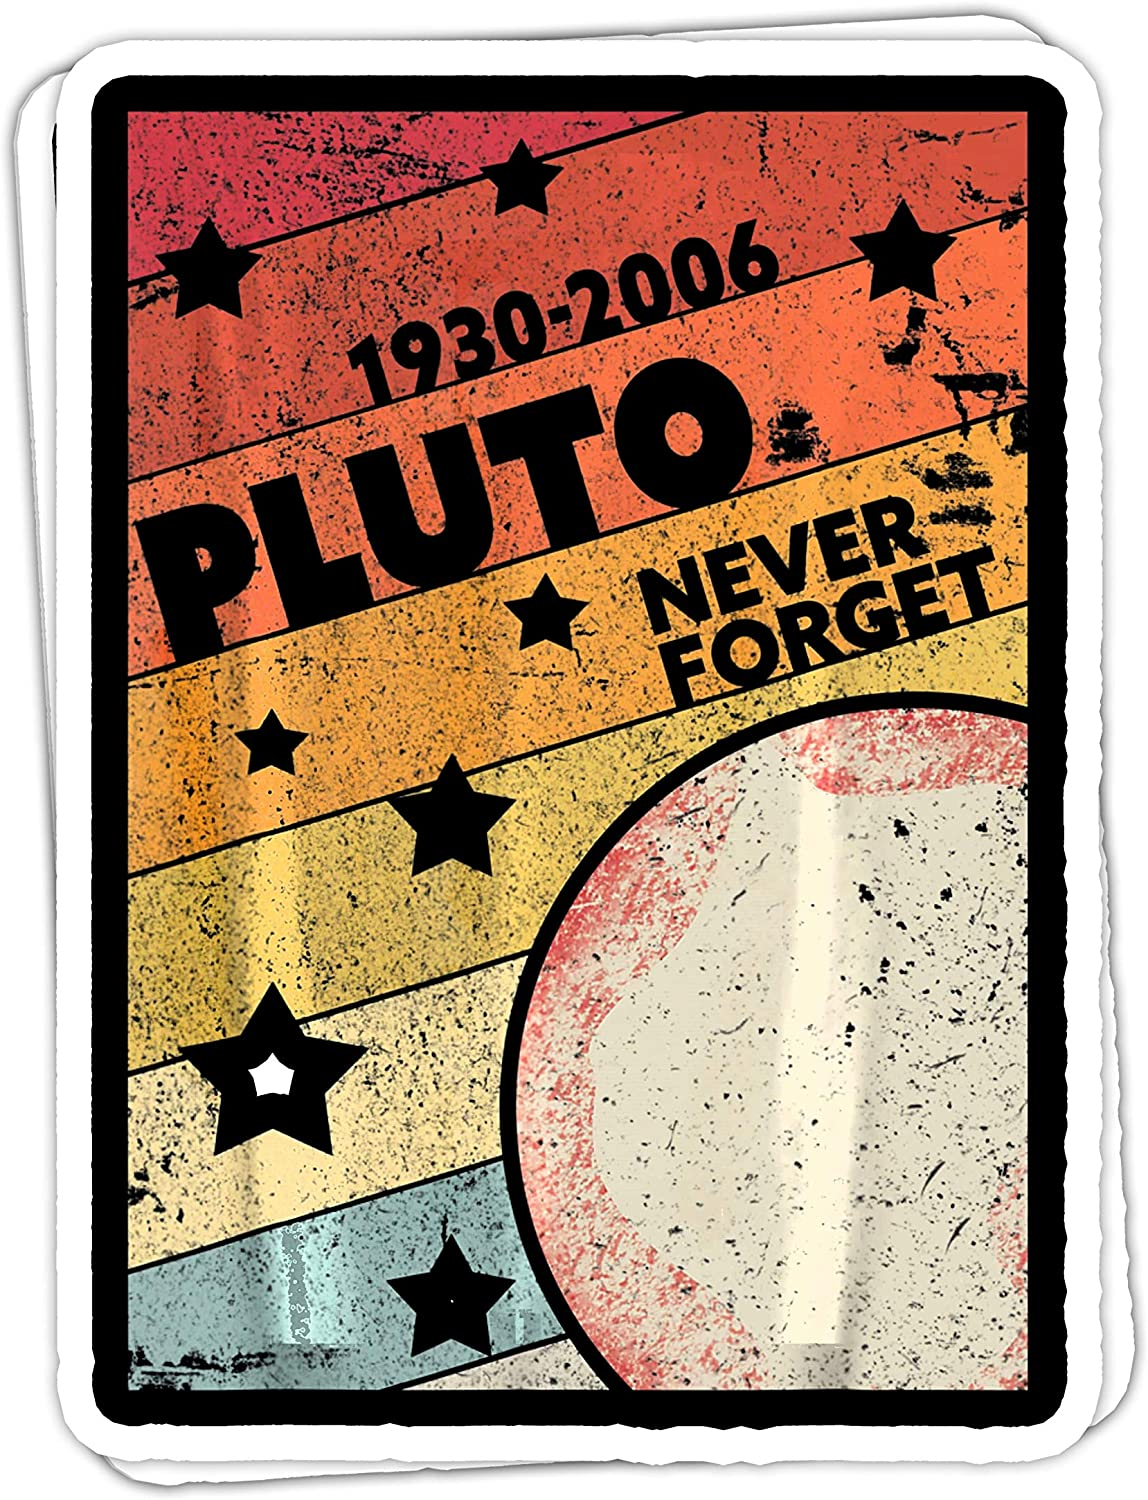 chillylkst Never Forget Pluto Retro Style Funny Space, Science - 4x3 Vinyl Stickers, Laptop Decal, Water Bottle Sticker (Set of 3)